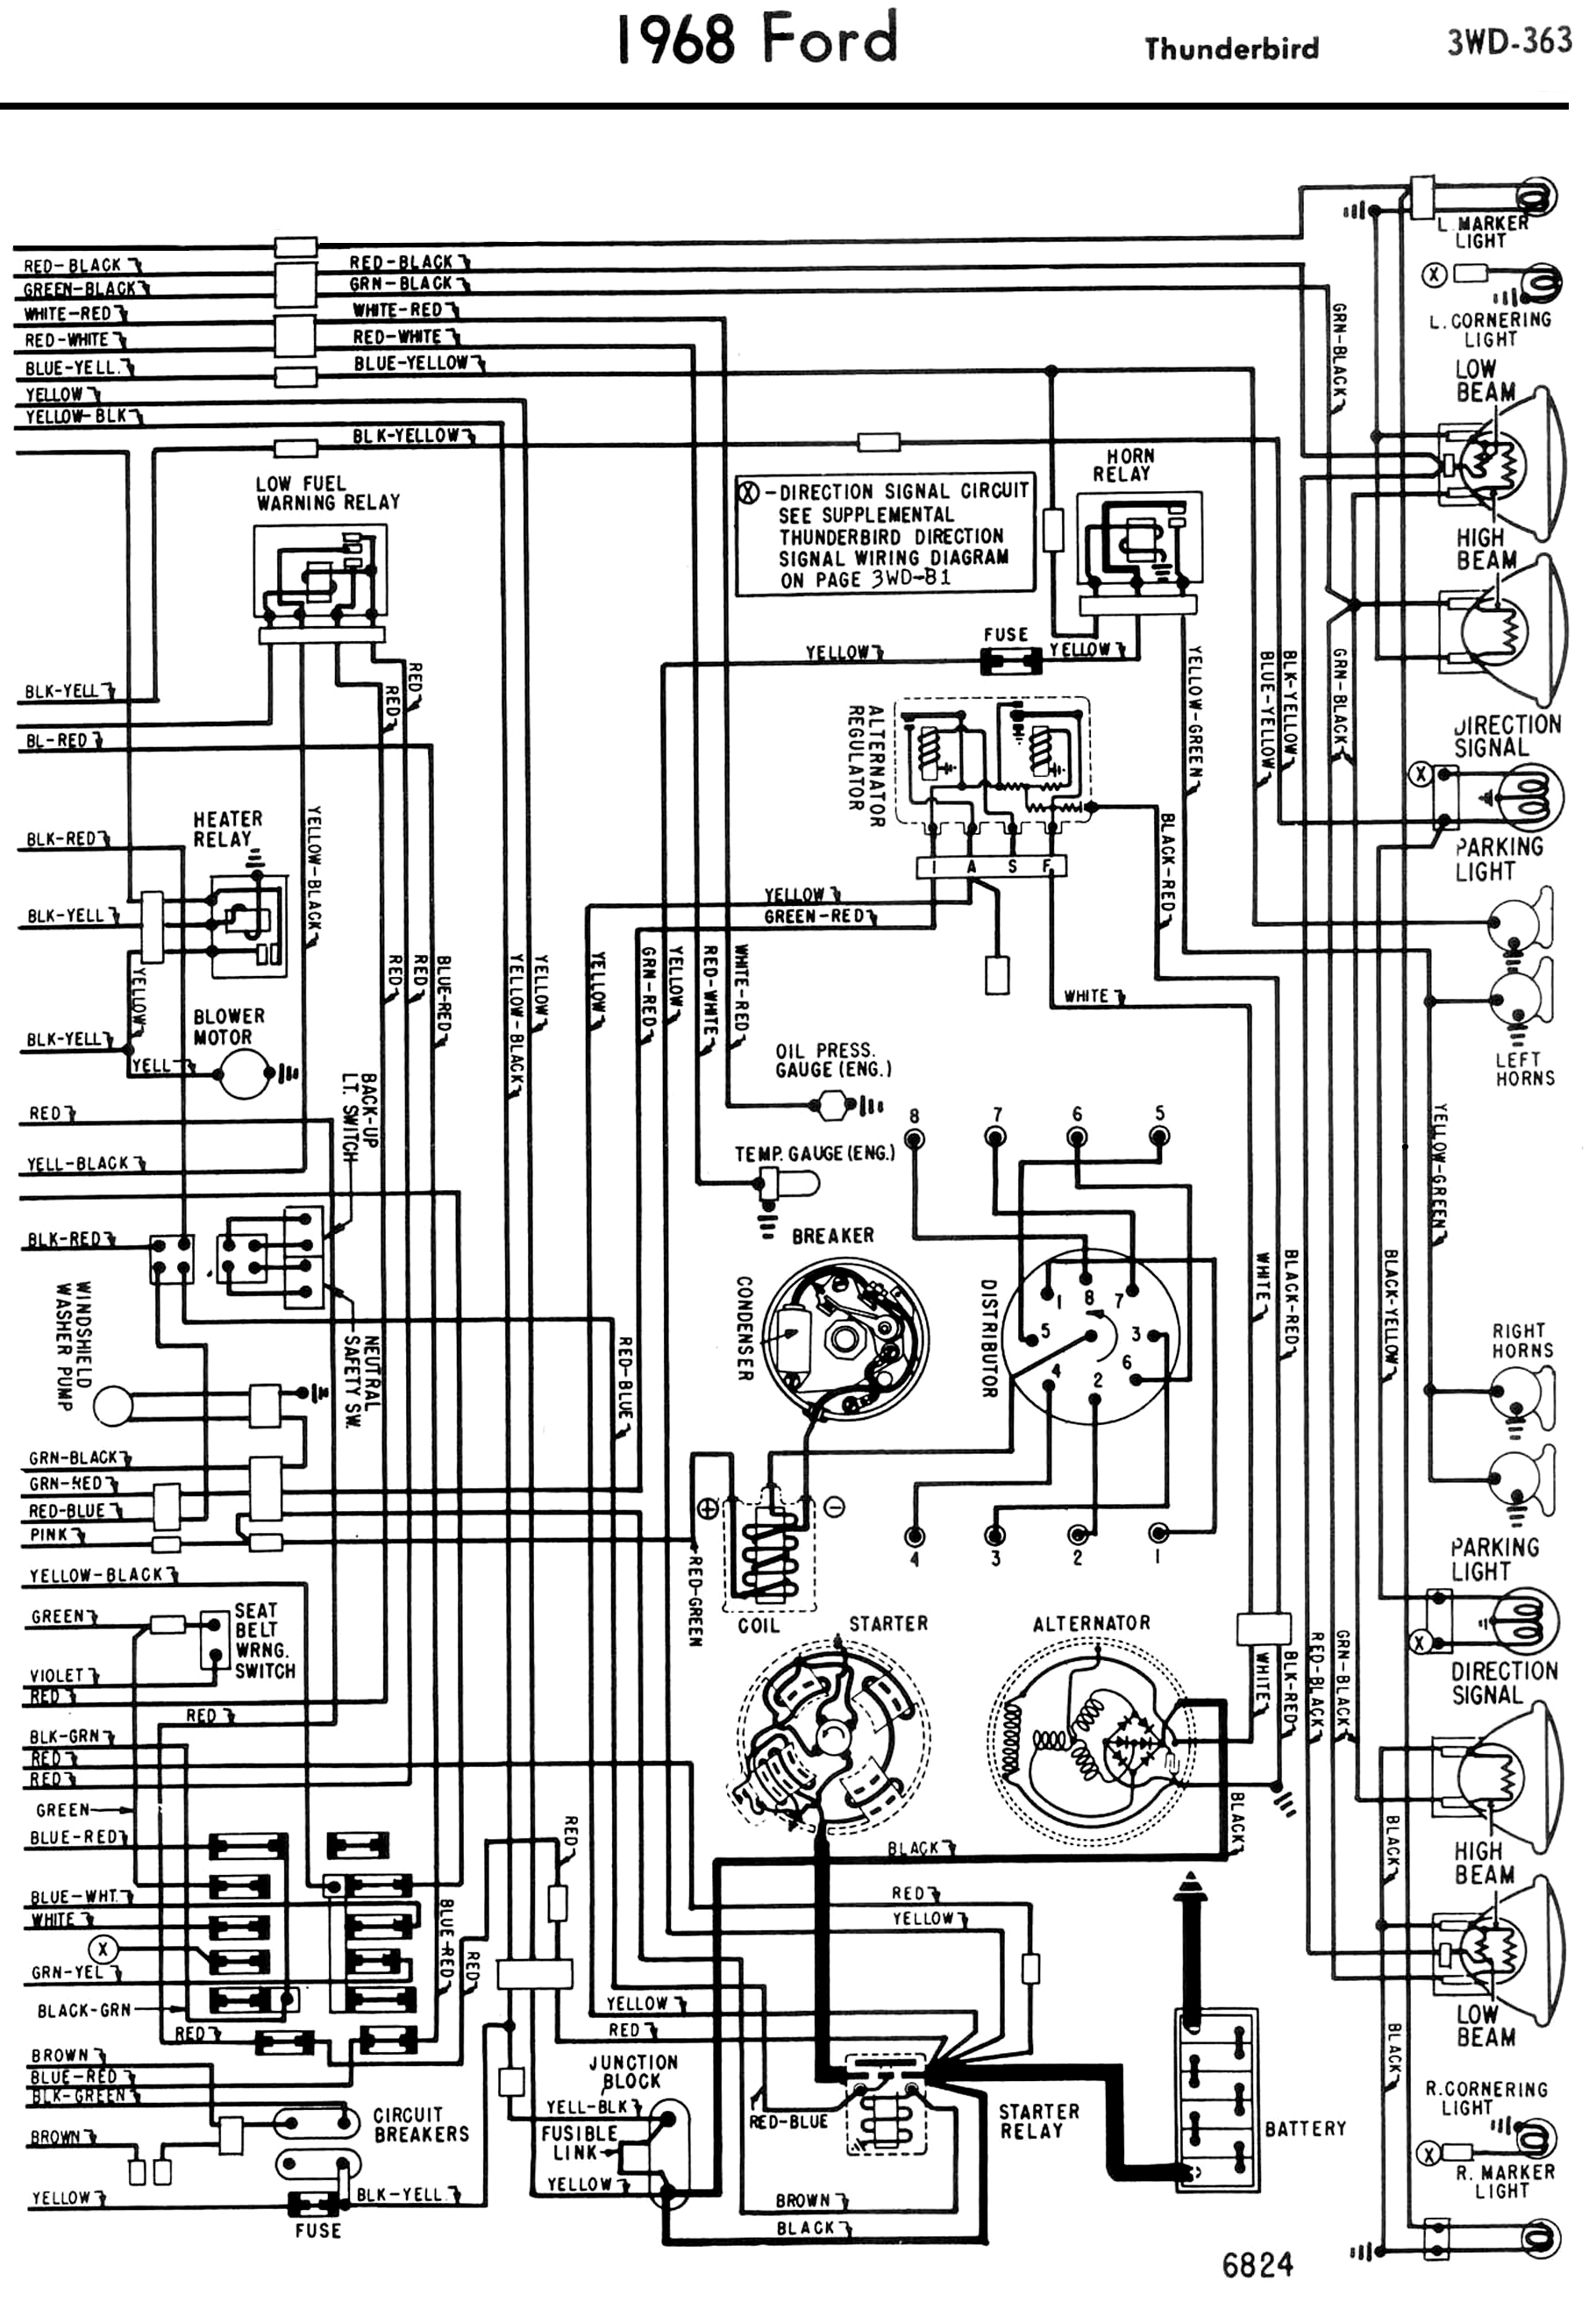 1958 68 ford electrical schematics Ford Wiring Harness Diagrams